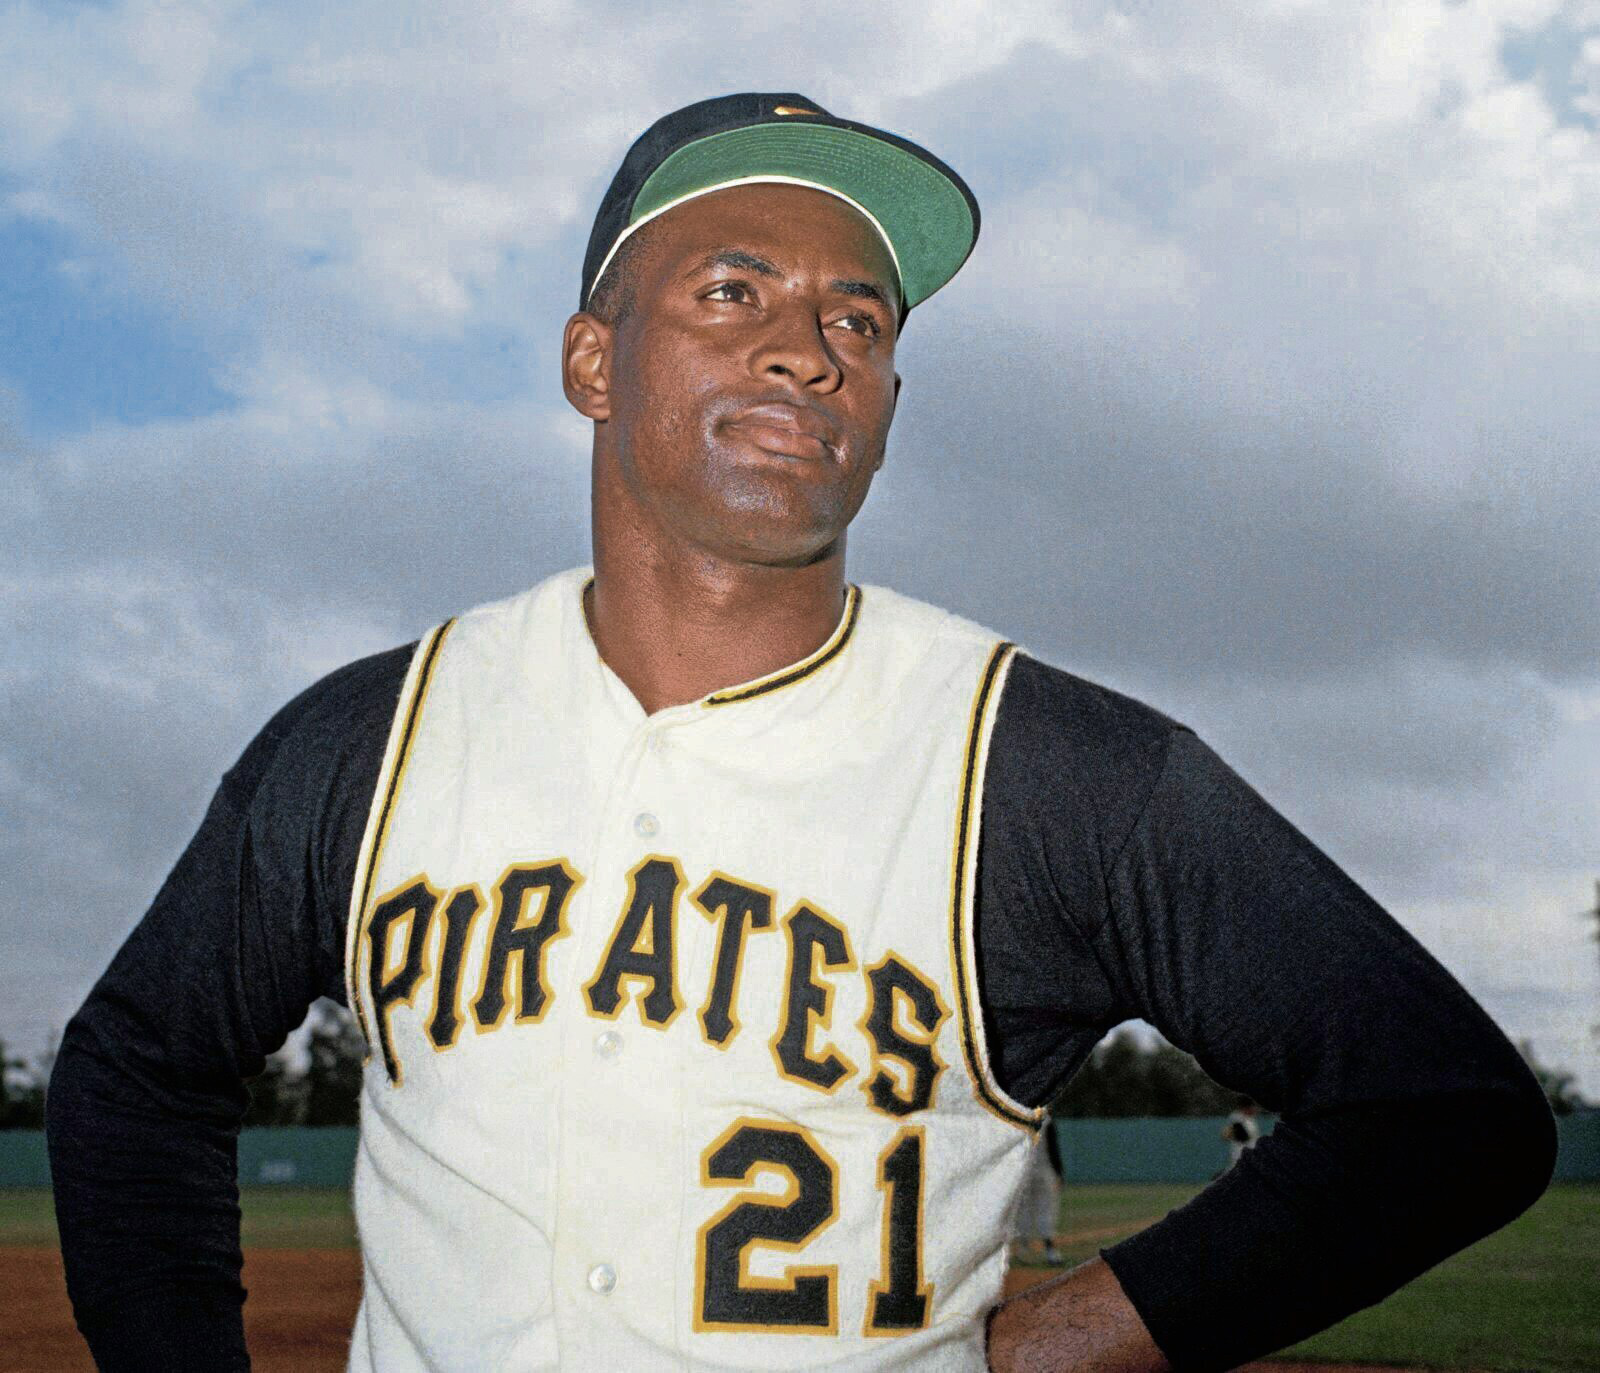 Roberto Clemente Pursued Excellence We Can Honor Him By Pursuing Equality America Magazine